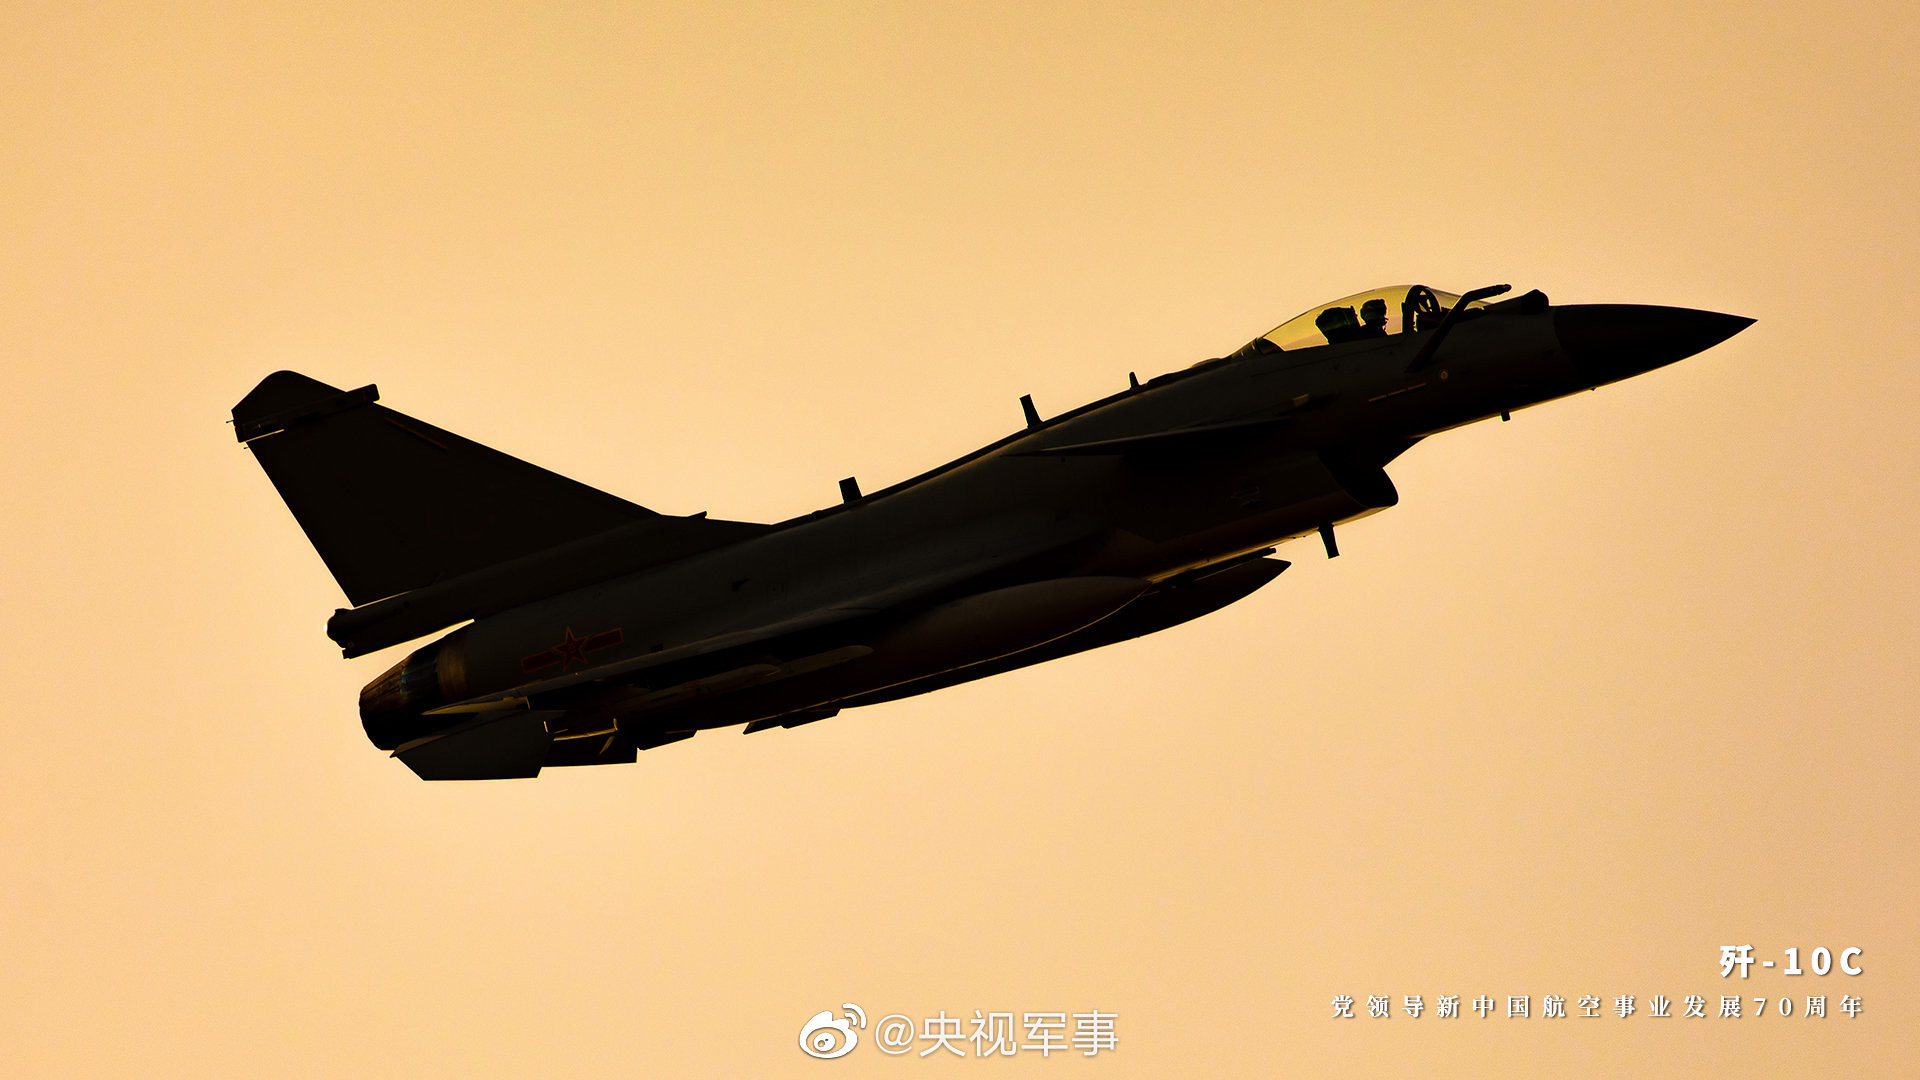 PLA Air Force General News Thread: - Page 12 51121666739_3304f03715_k